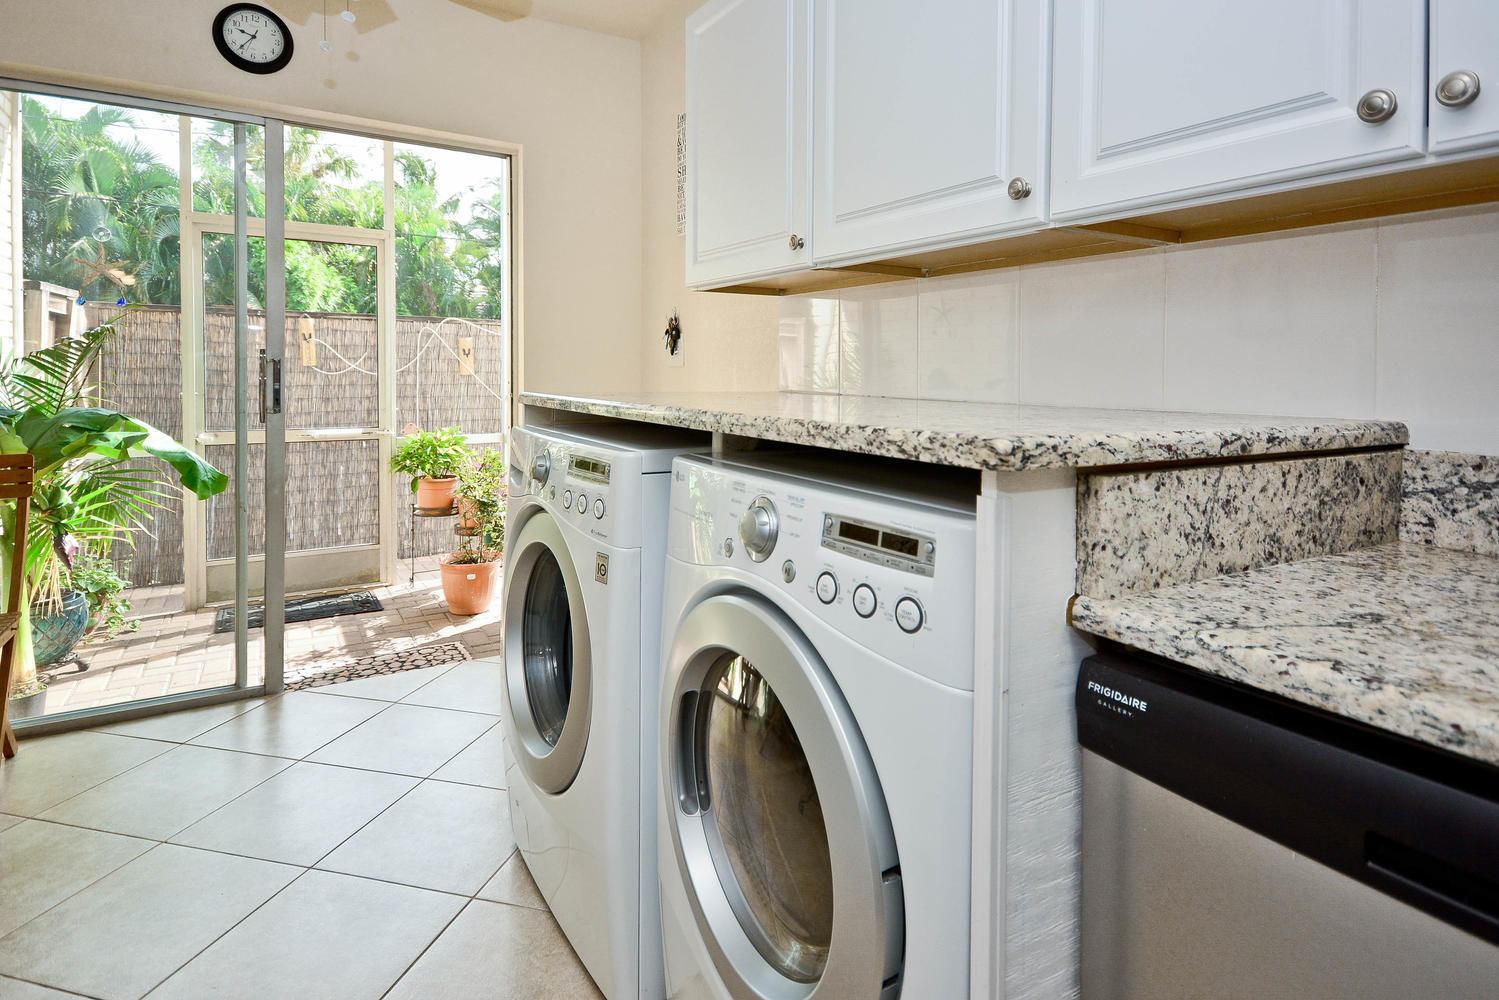 hk washer and dryer